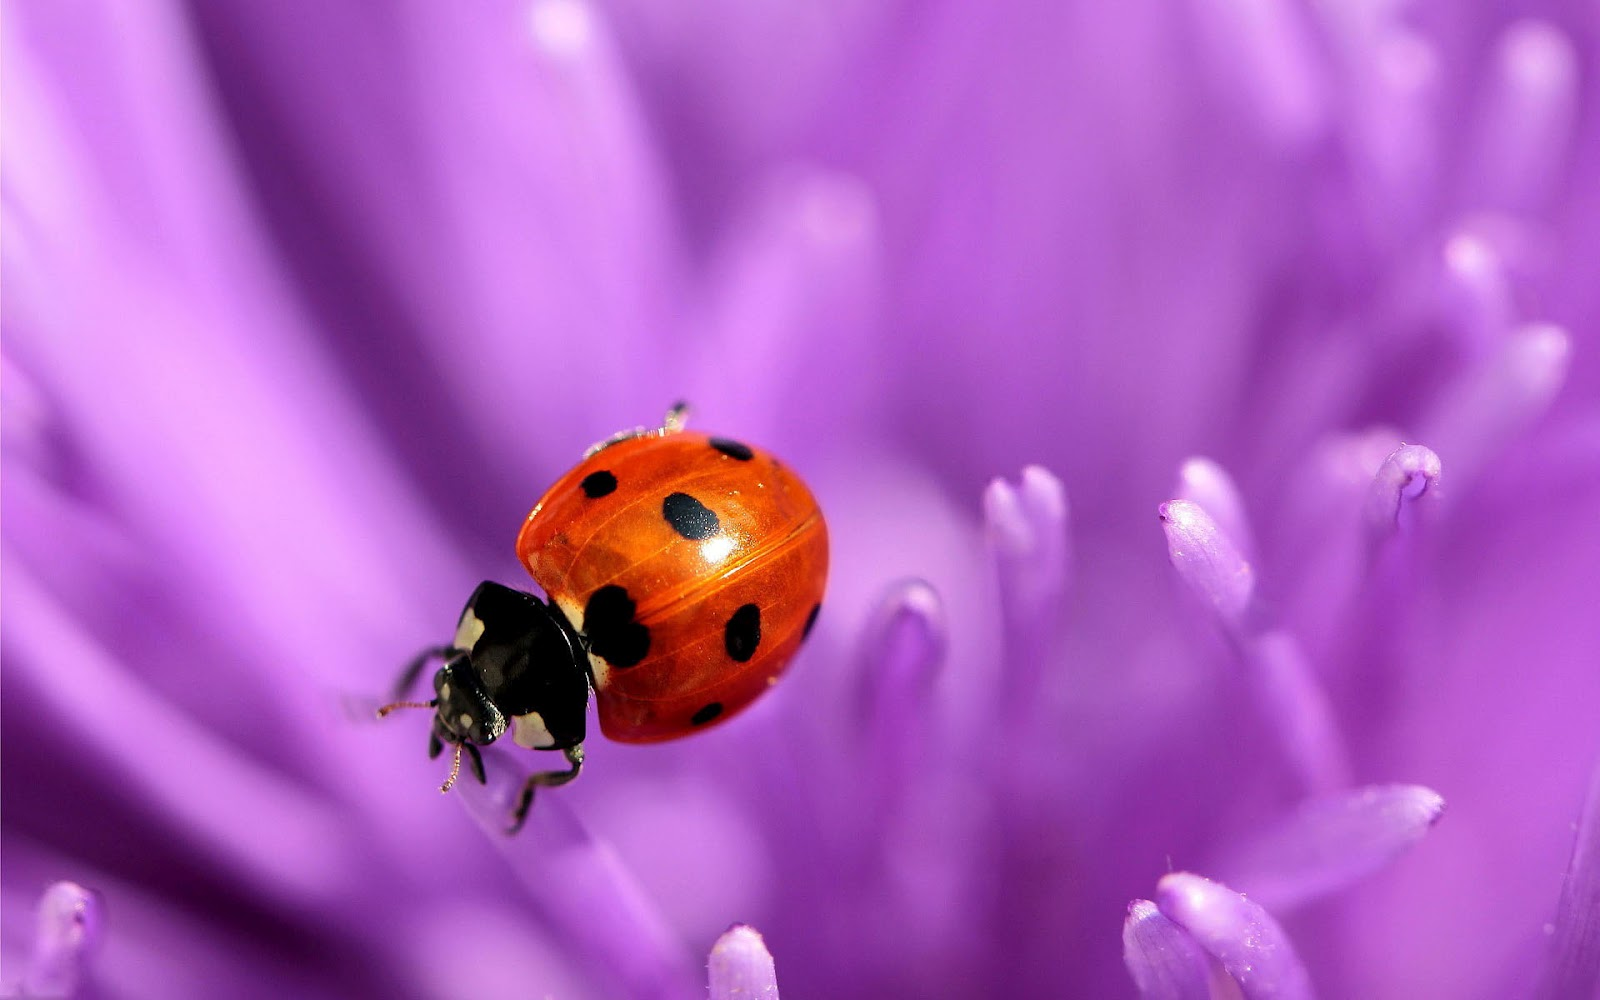 photo of a ladybug on a purple flower | hd animals wallpapers